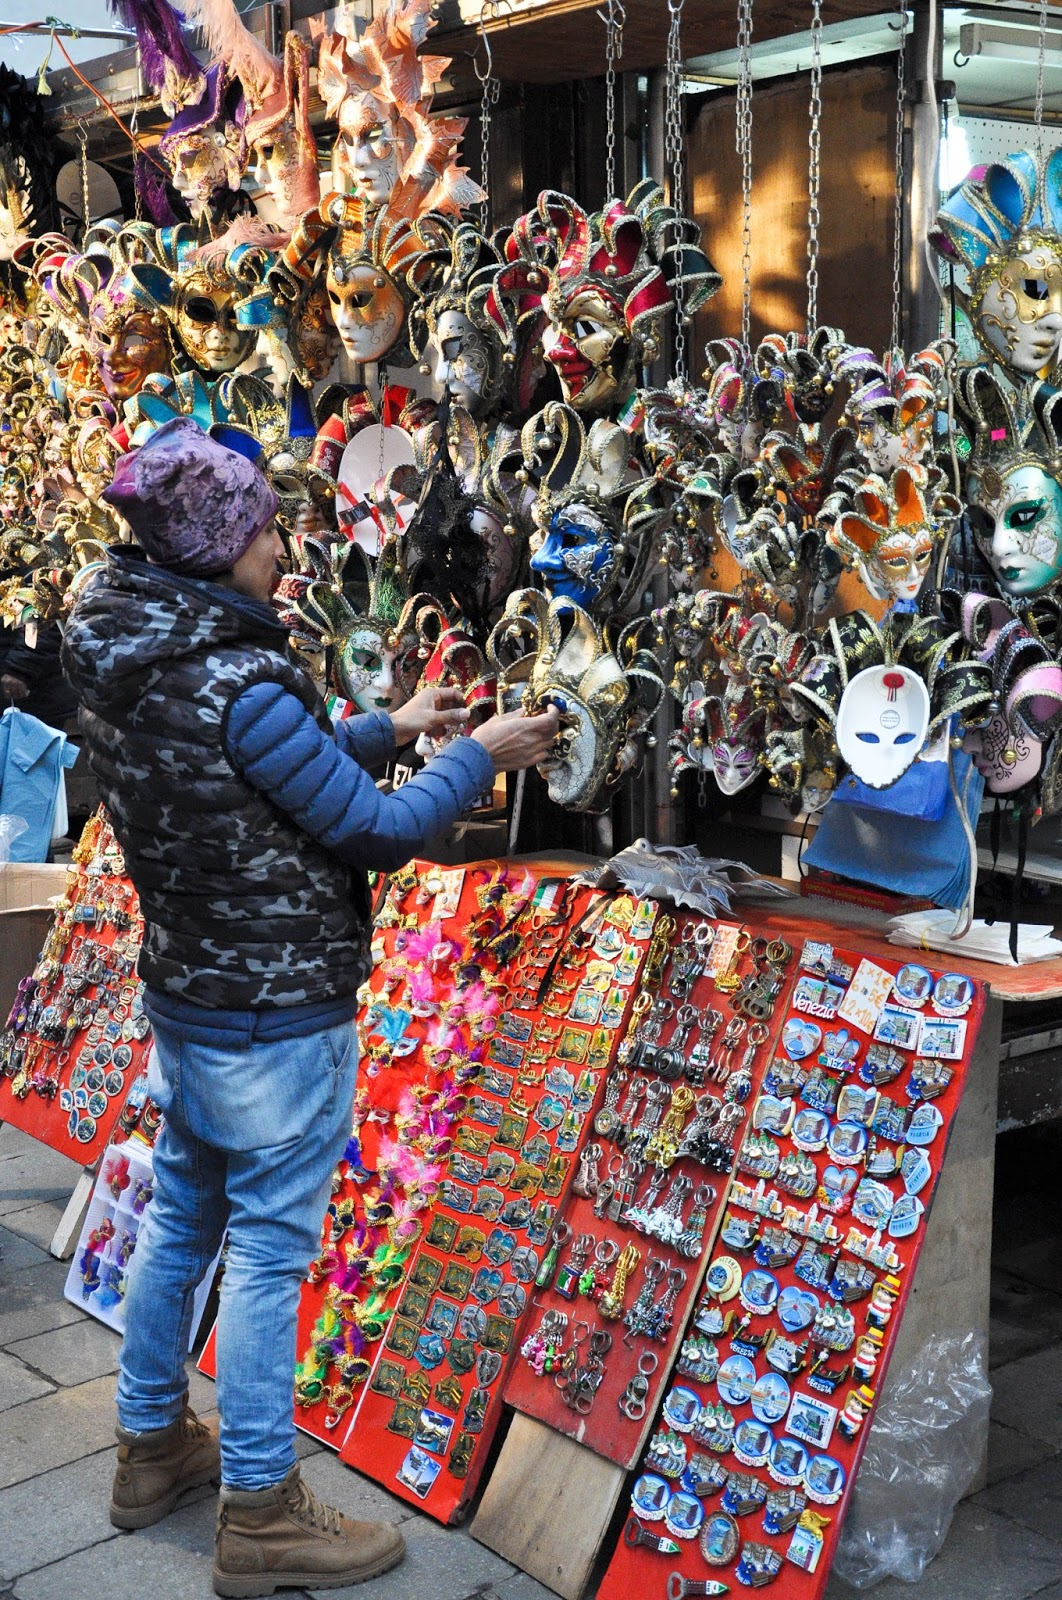 Setting up a cheap souvenir stall, Venice, Italy